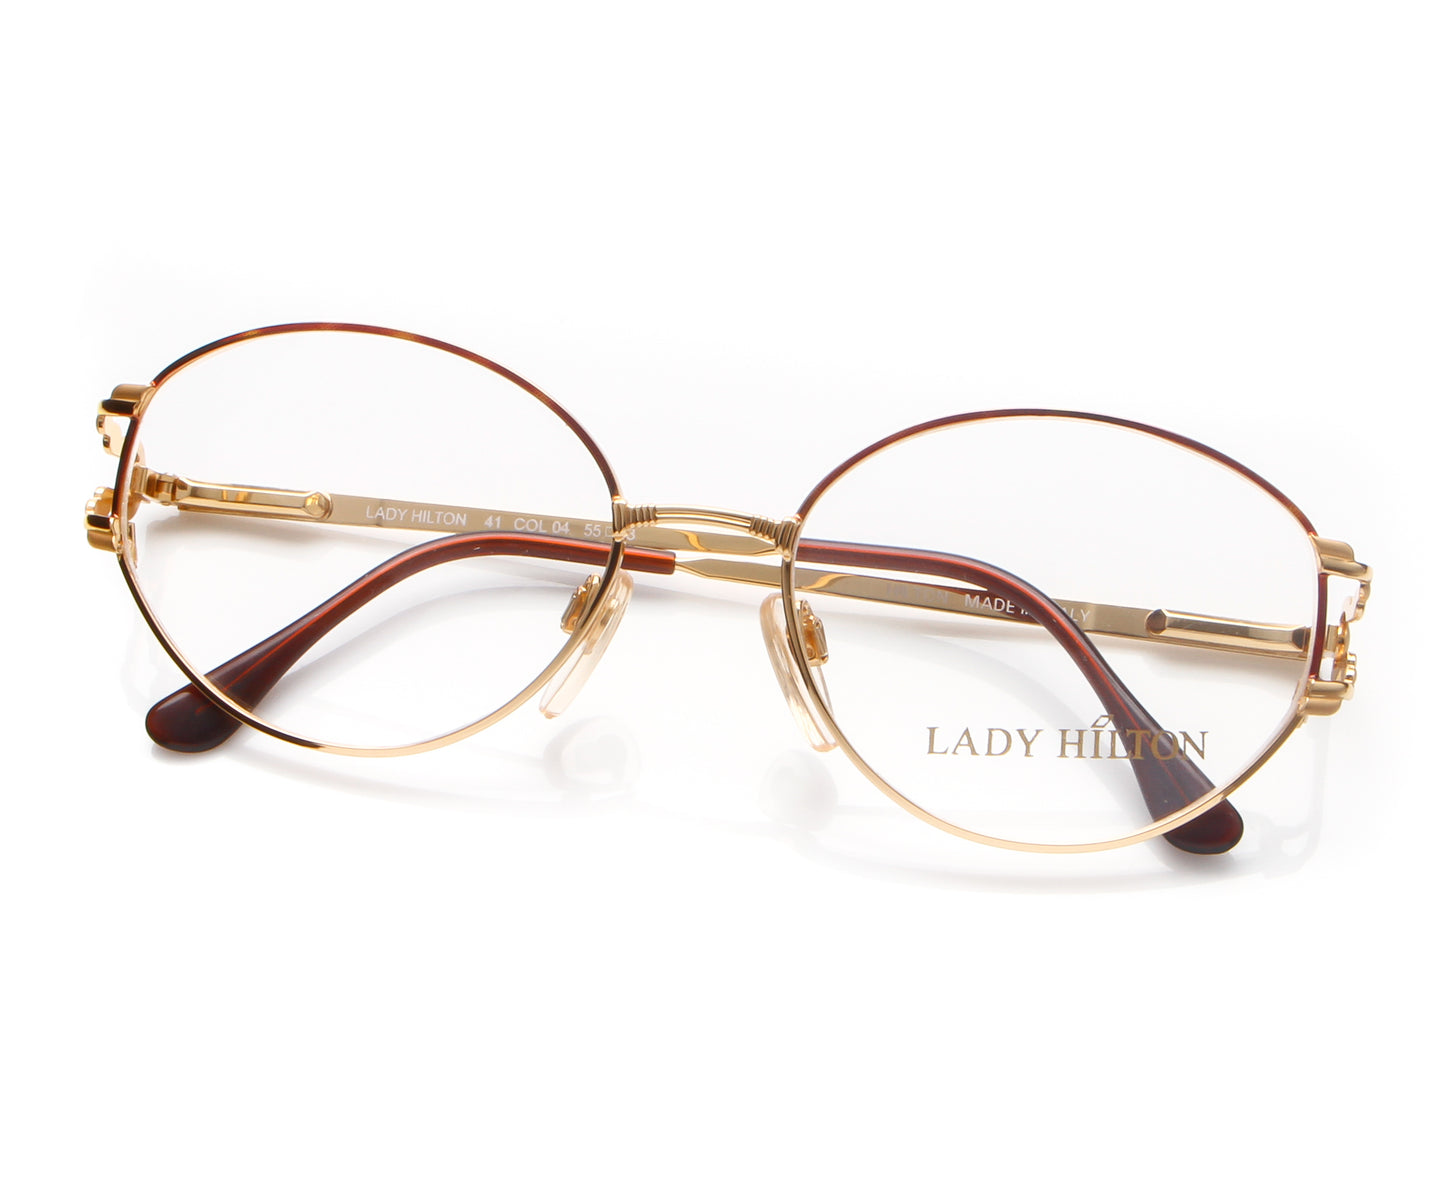 Vintage Hilton Lady Hilton 41 04 22 KGP Thumb, Hilton , glasses frames, eyeglasses online, eyeglass frames, mens glasses, womens glasses, buy glasses online, designer eyeglasses, vintage sunglasses, retro sunglasses, vintage glasses, sunglass, eyeglass, glasses, lens, vintage frames company, vf